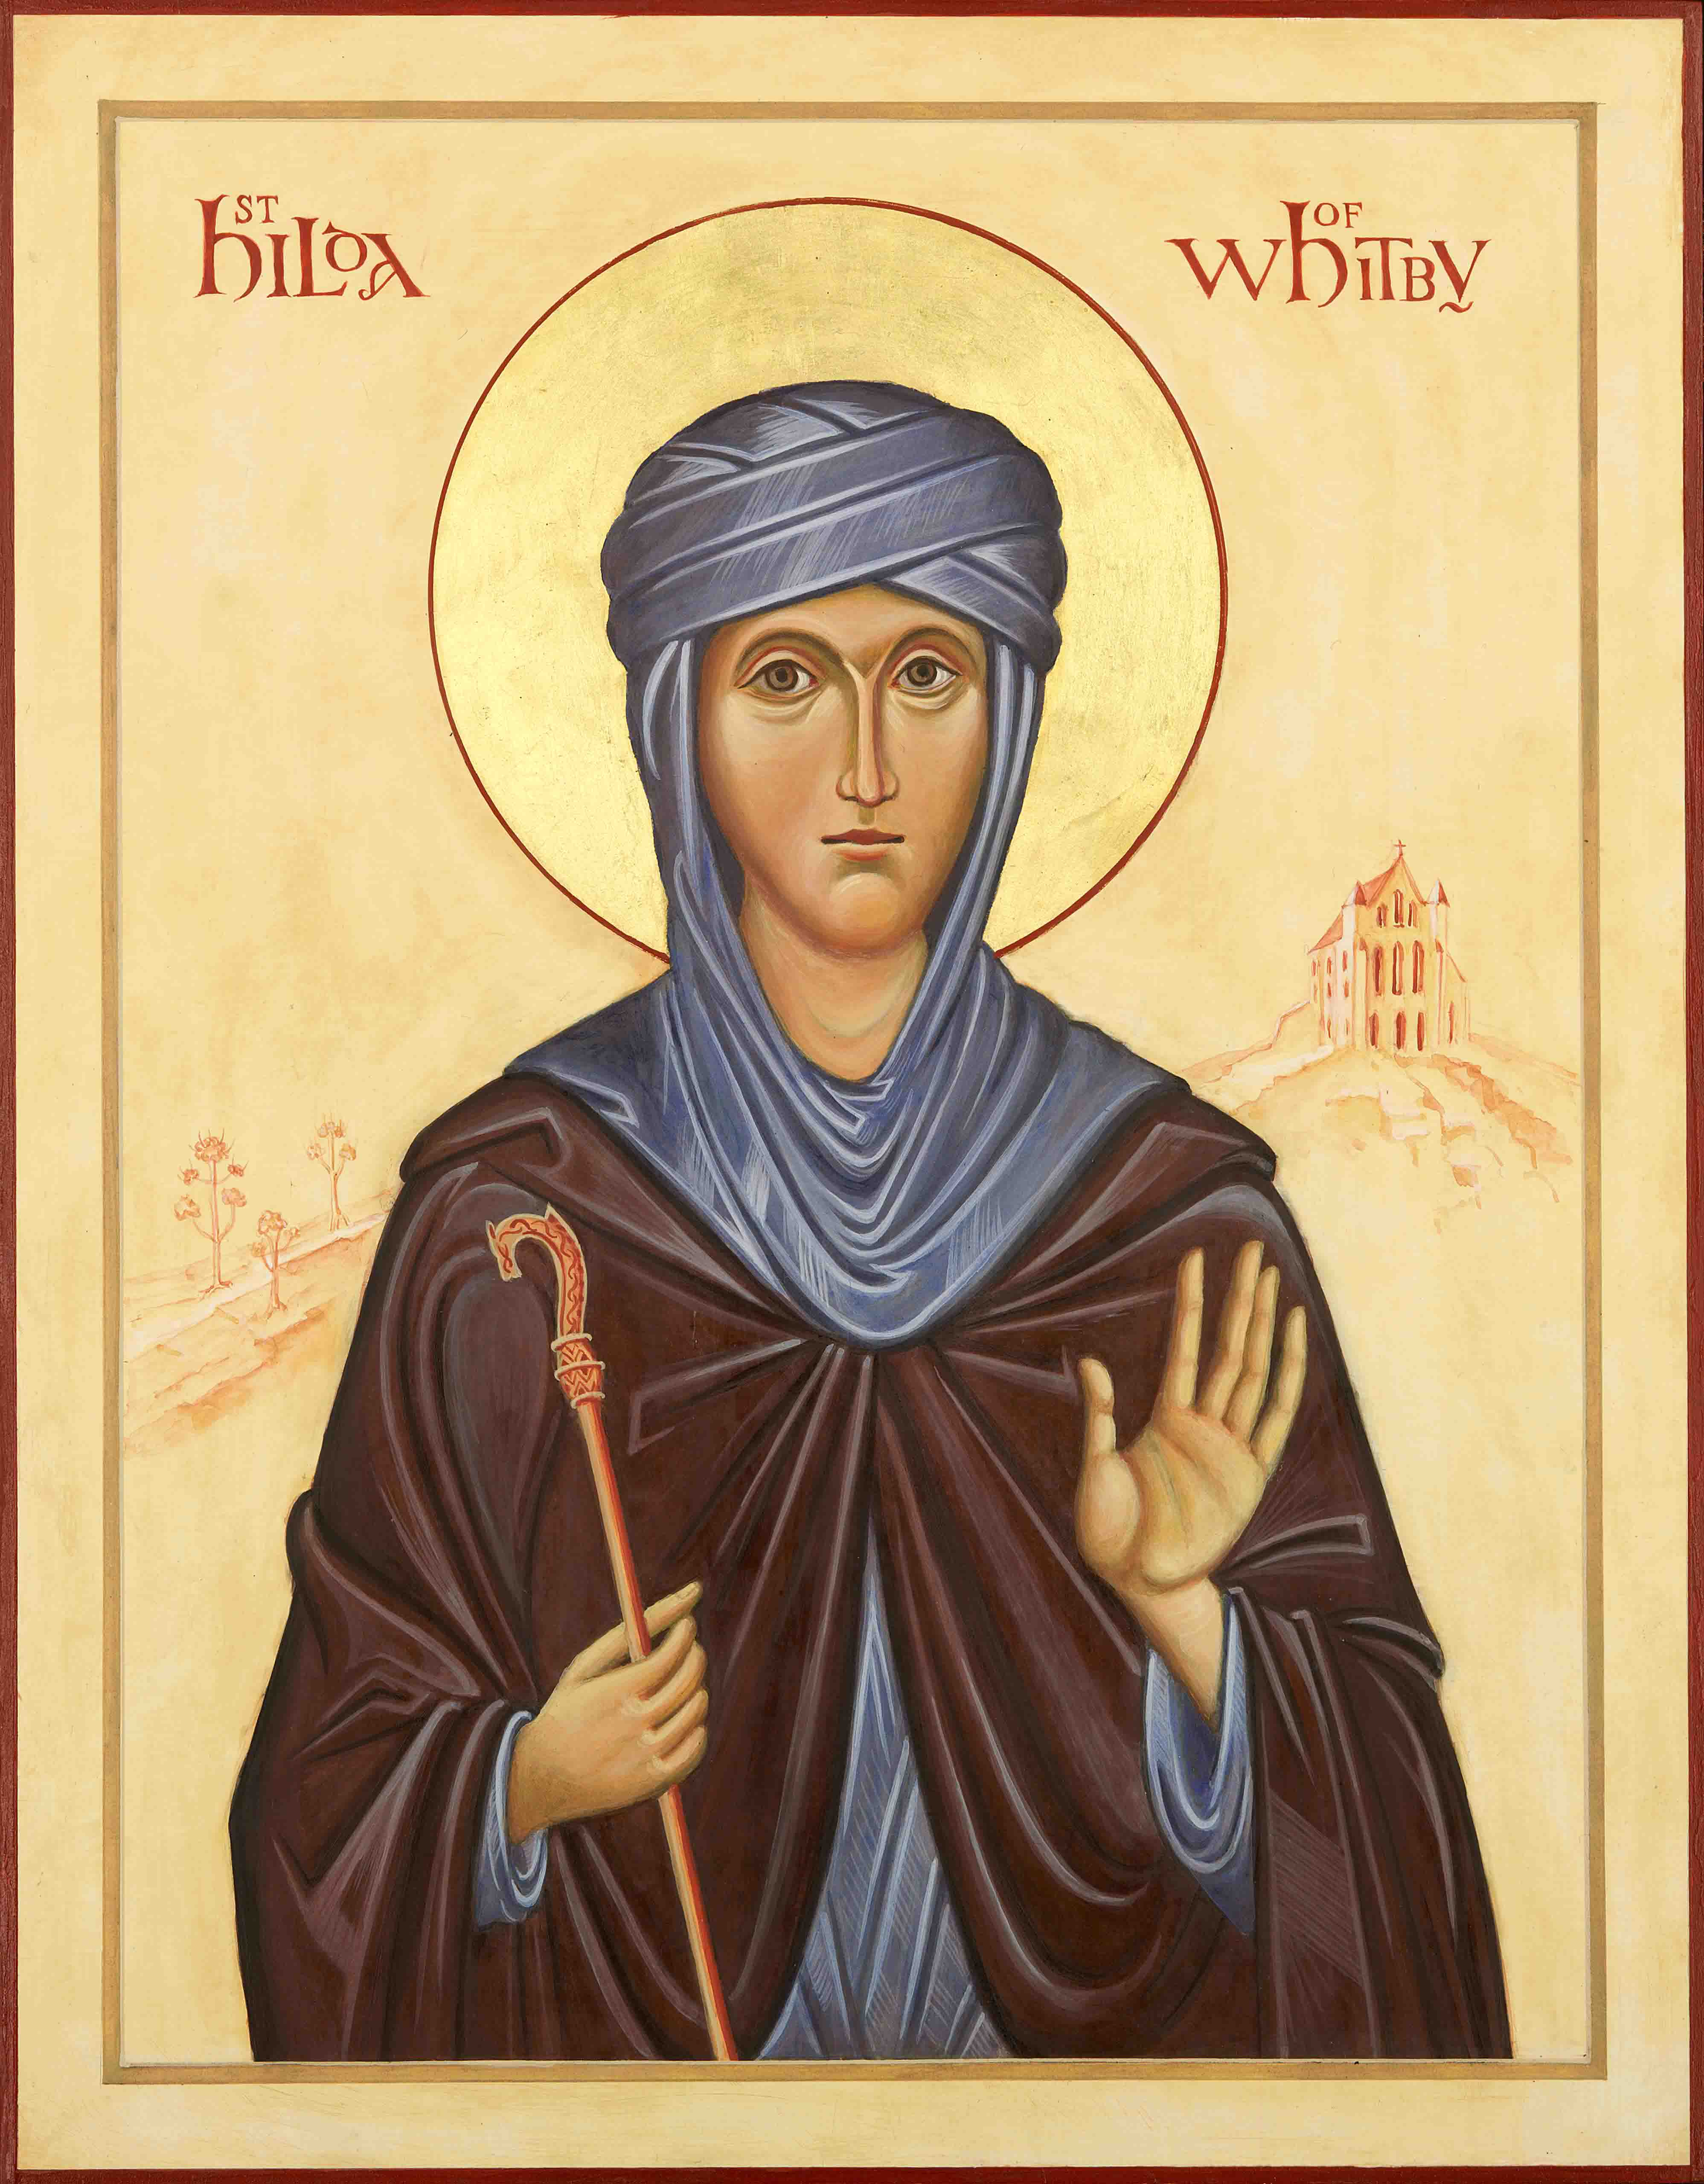 iconpainting of St Hilda of Whitby by Ronnie Cruwys